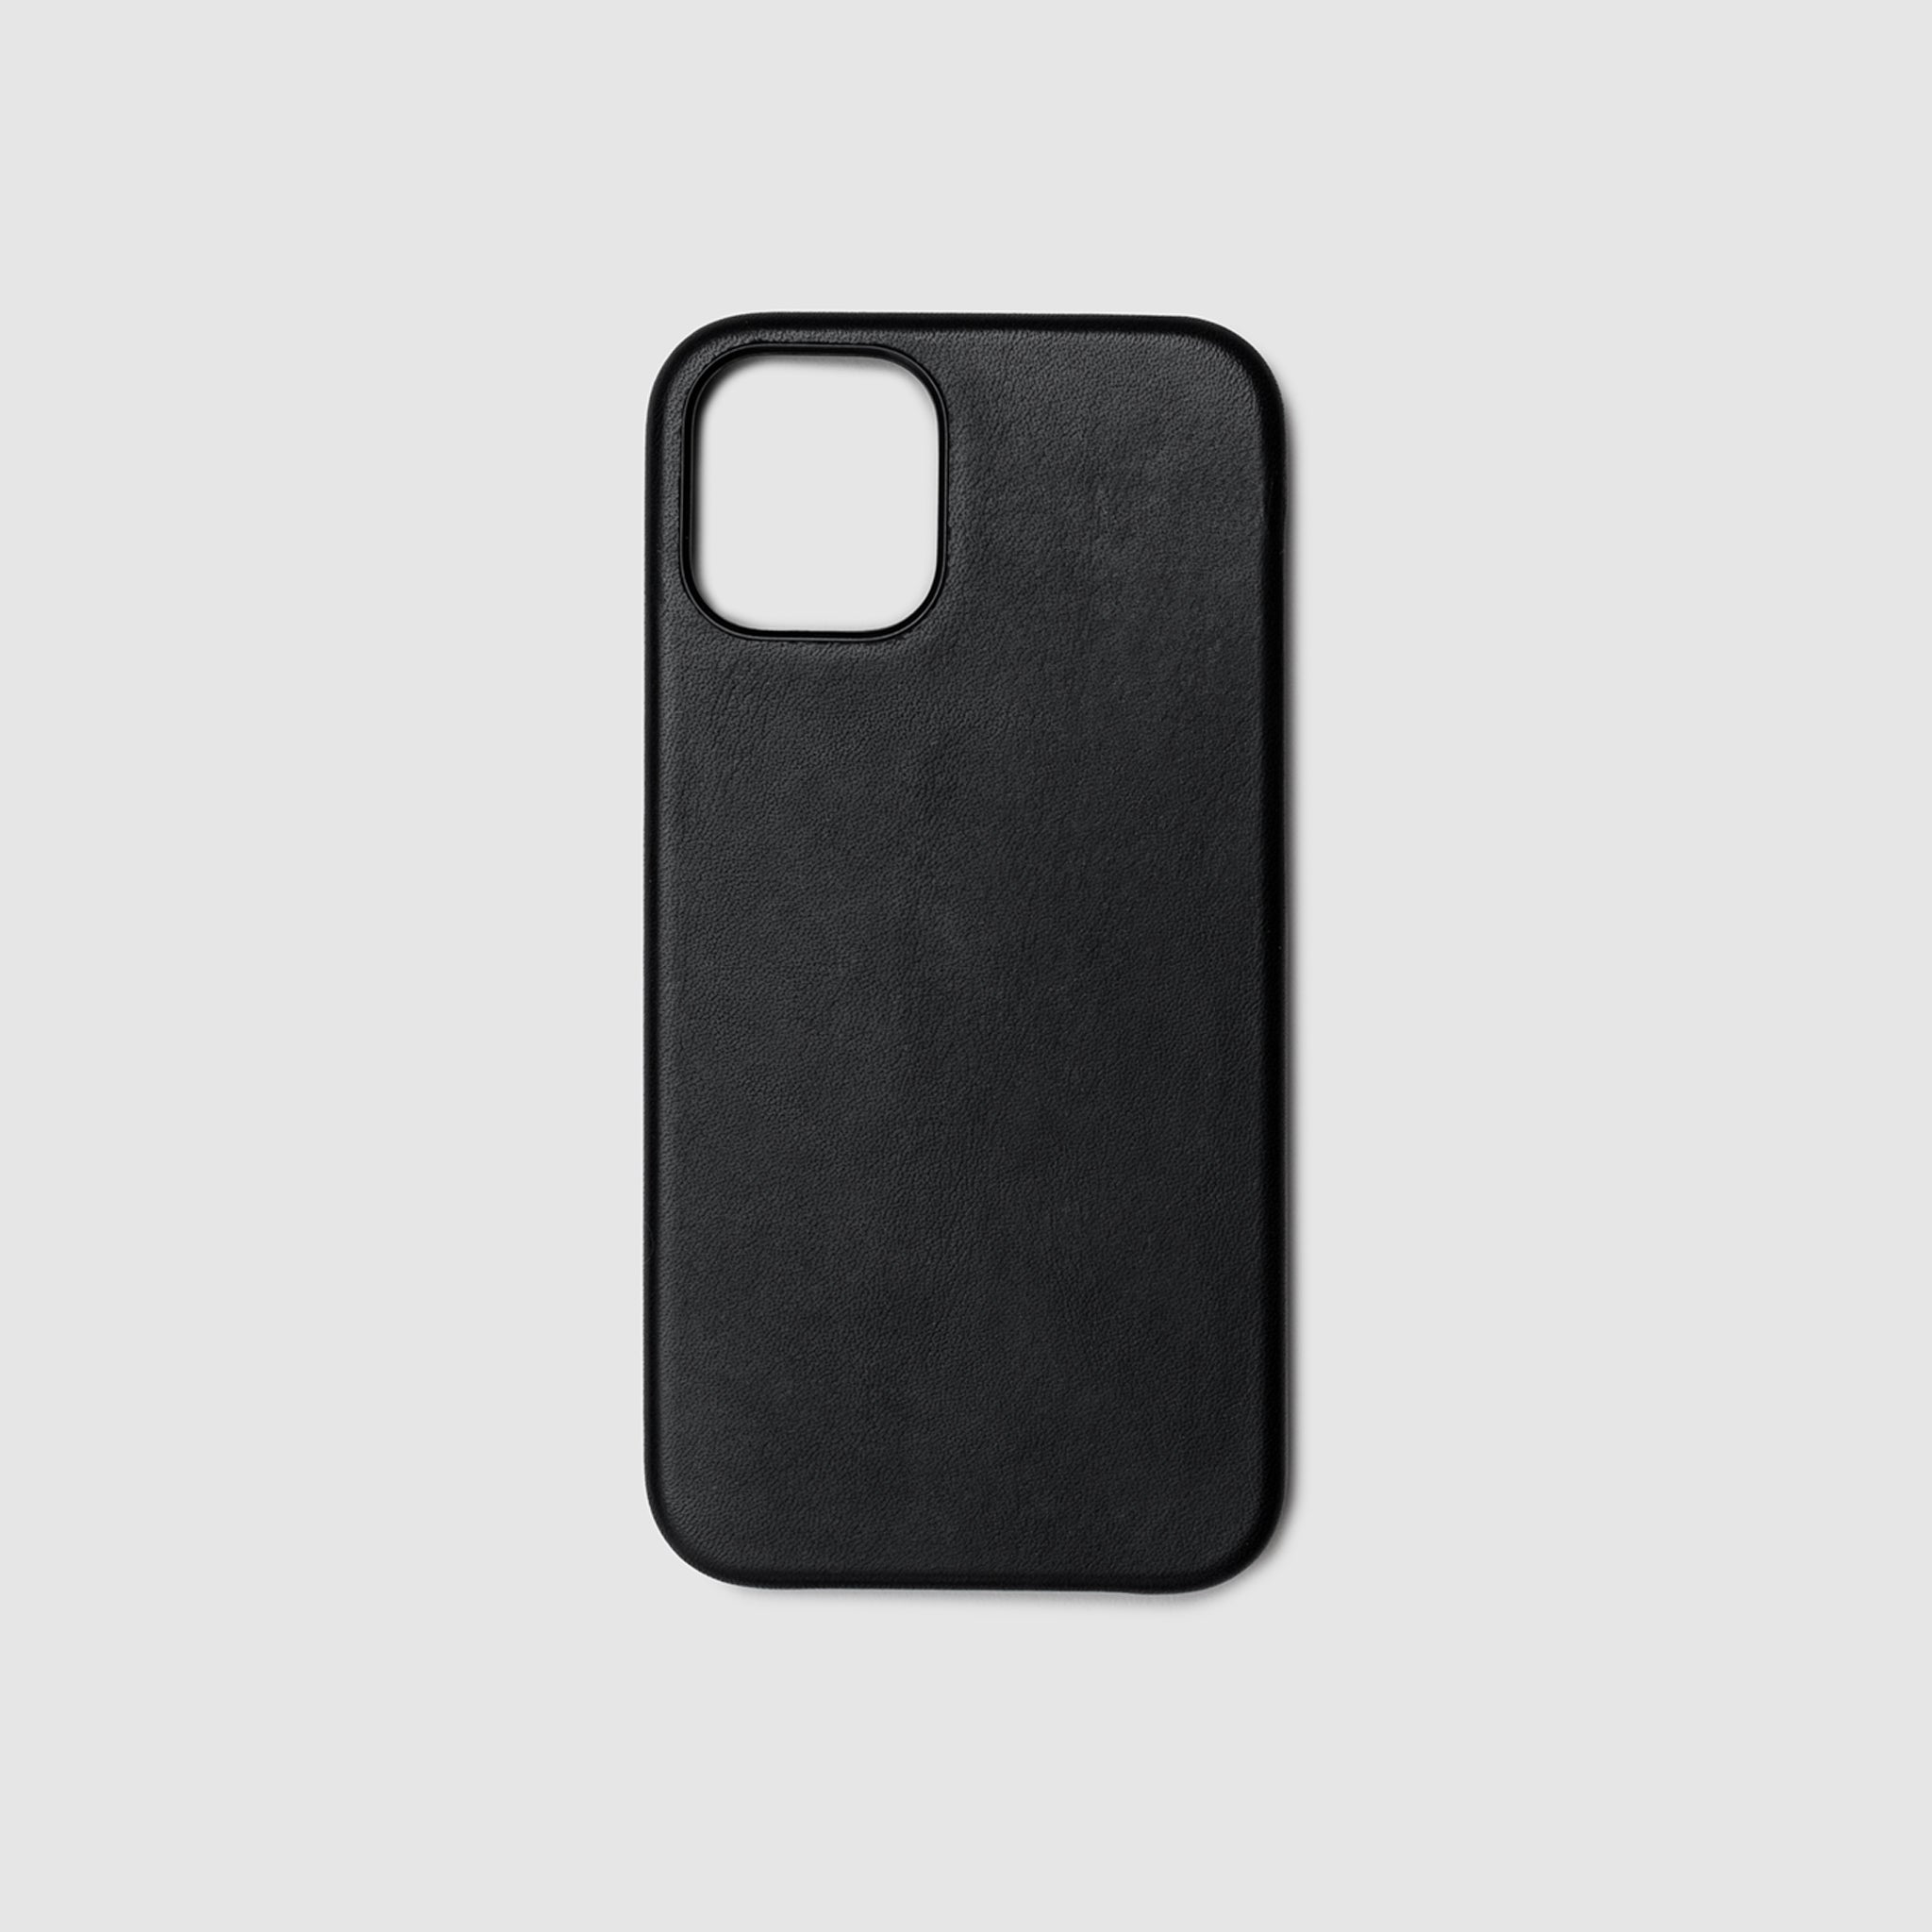 anson calder iphone case french calfskin 12 twelve pro max leather _black